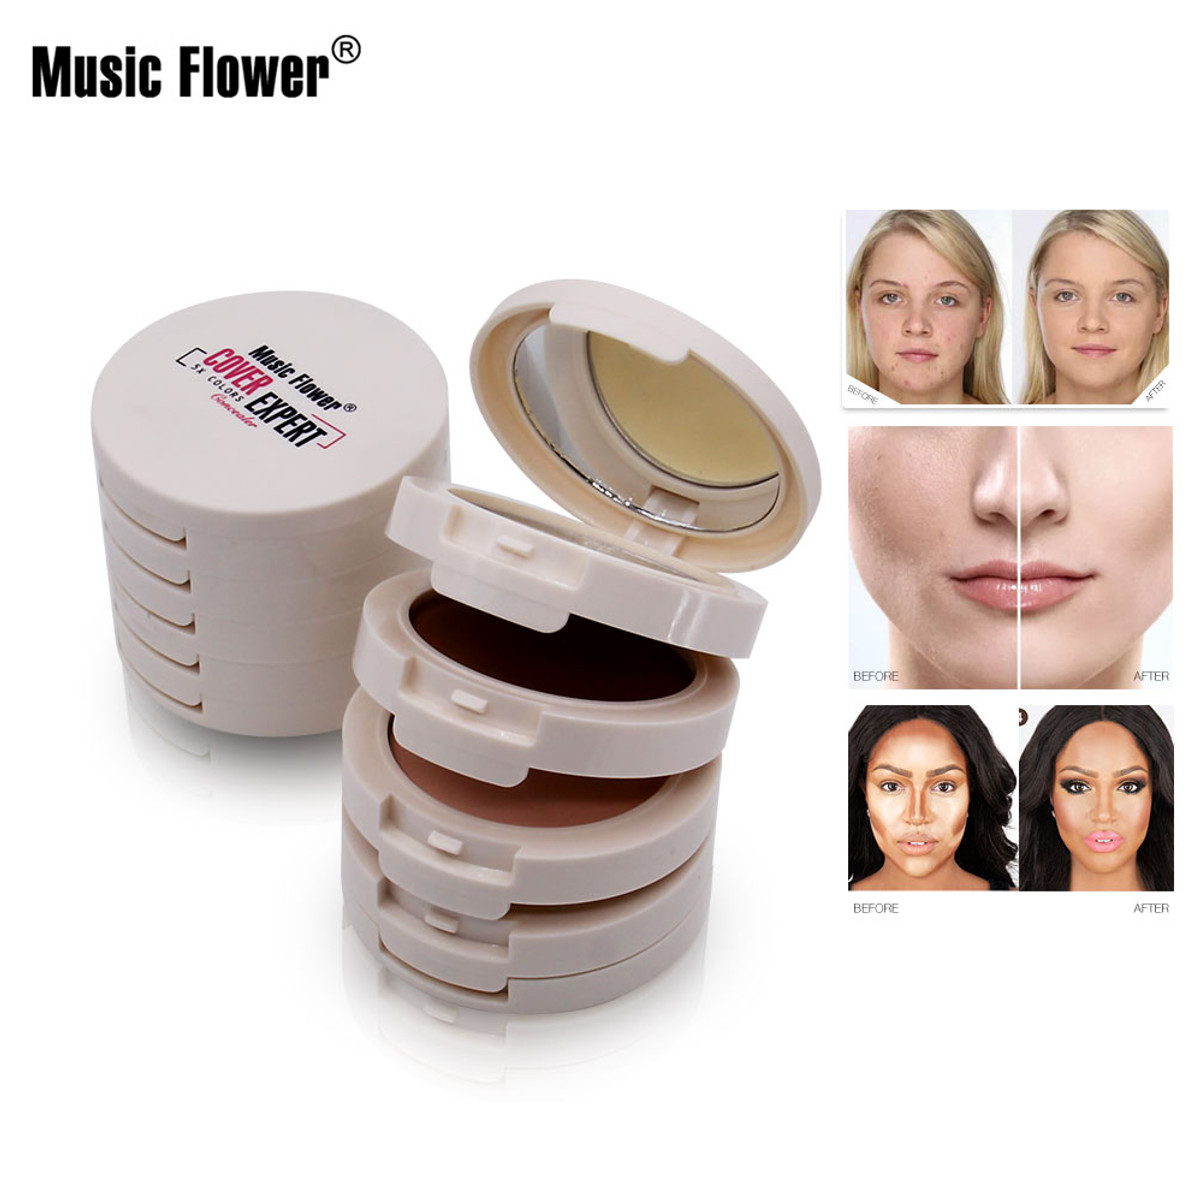 5 In 1 Music Flower Concealer Contouring Makeup Palette Foundation Base Face Corrector Bronzer Compact Powder